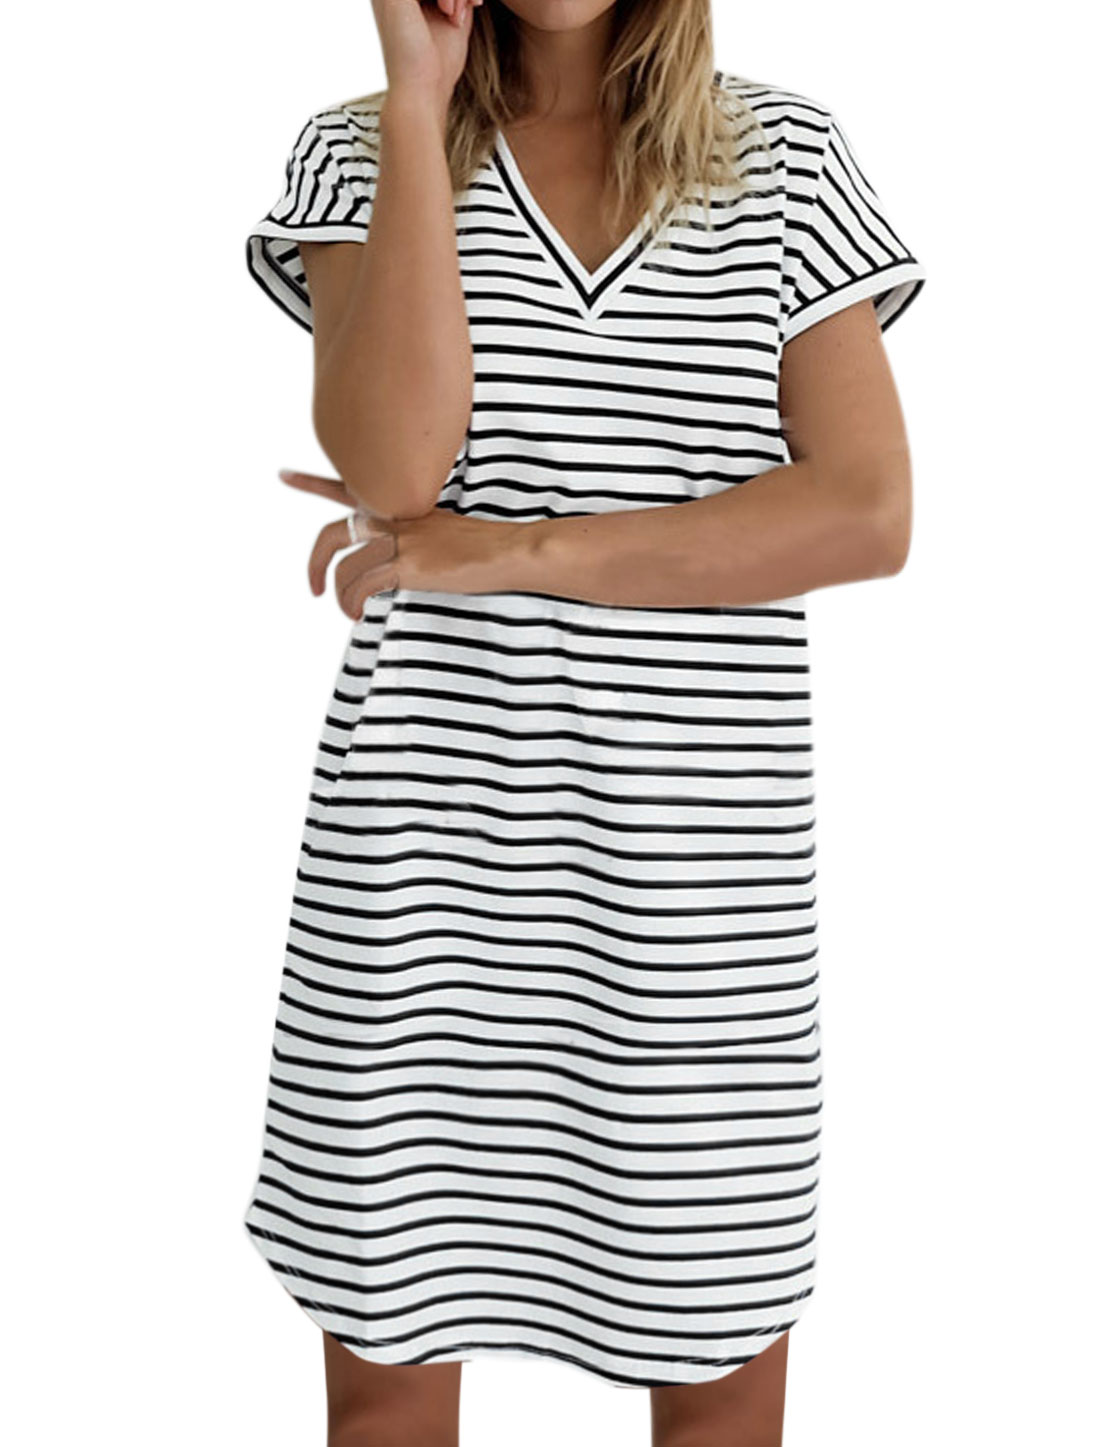 Women Batwing Sleeve Stripes V Neck Loose T-Shirt Dress White M